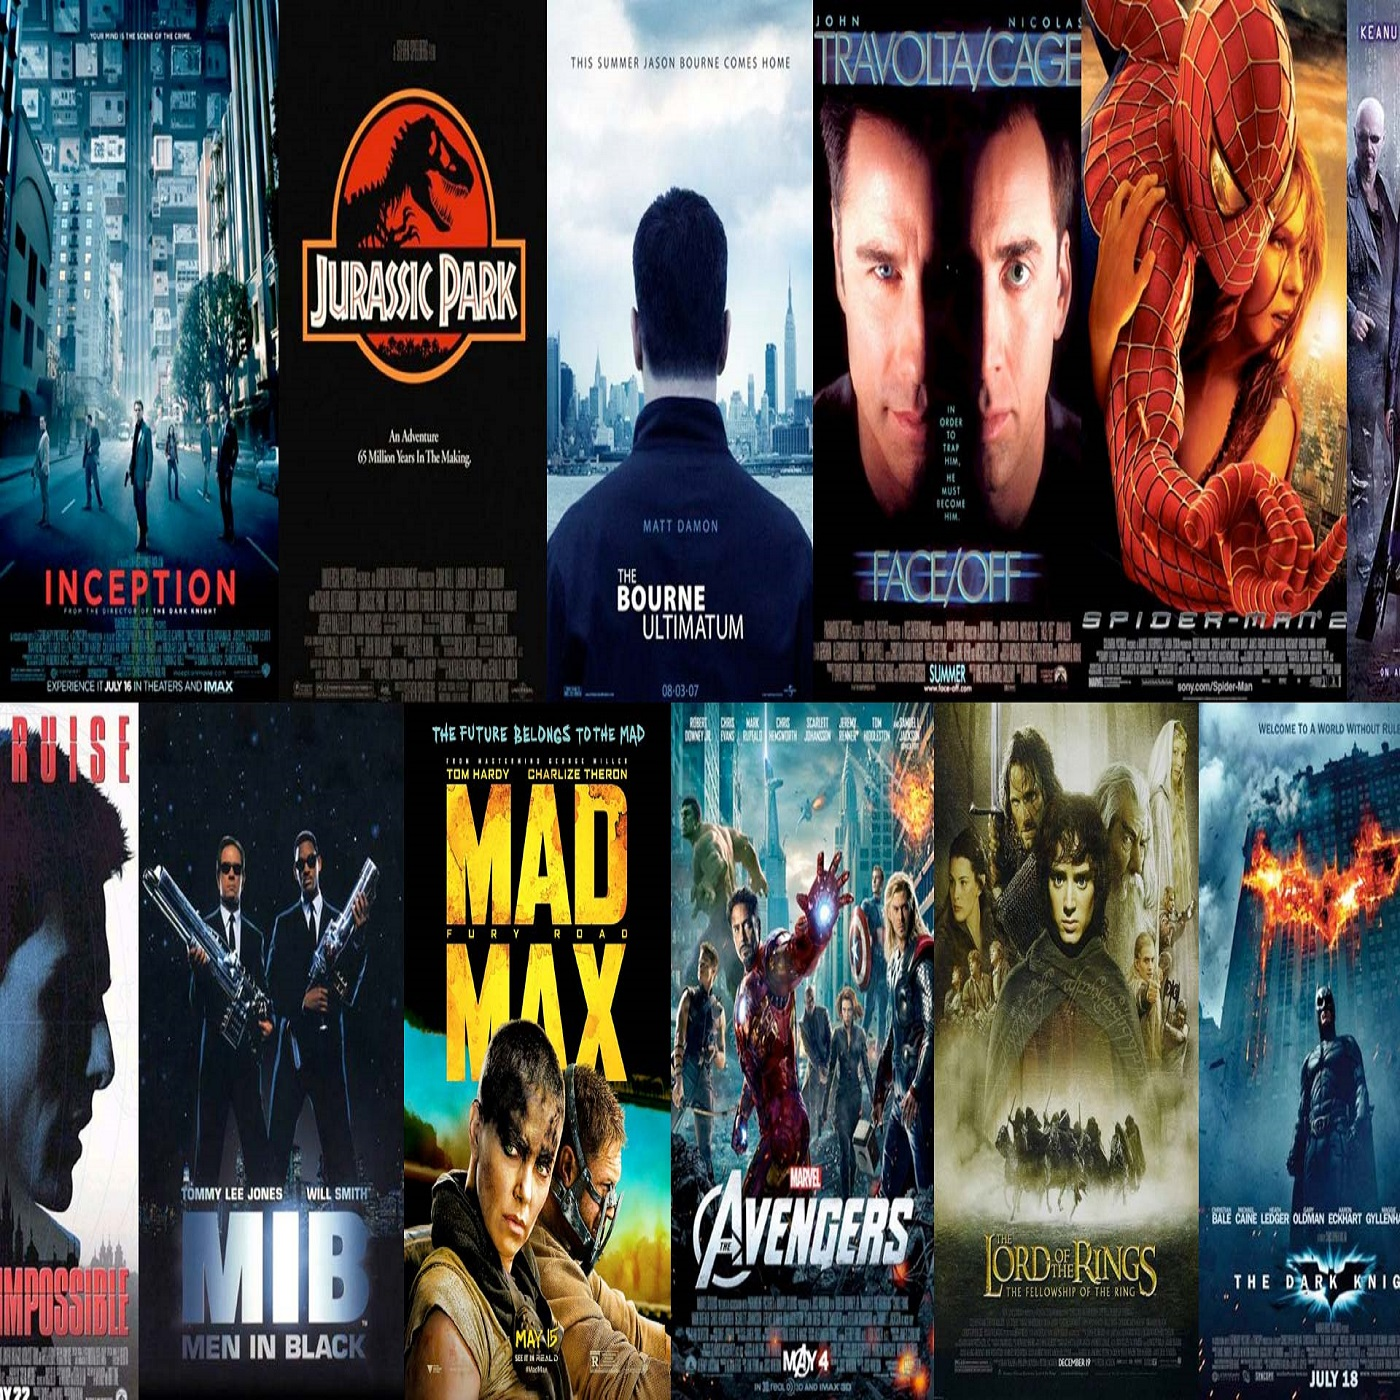 Download Free HD Quality Netflix123 Movies Online Without